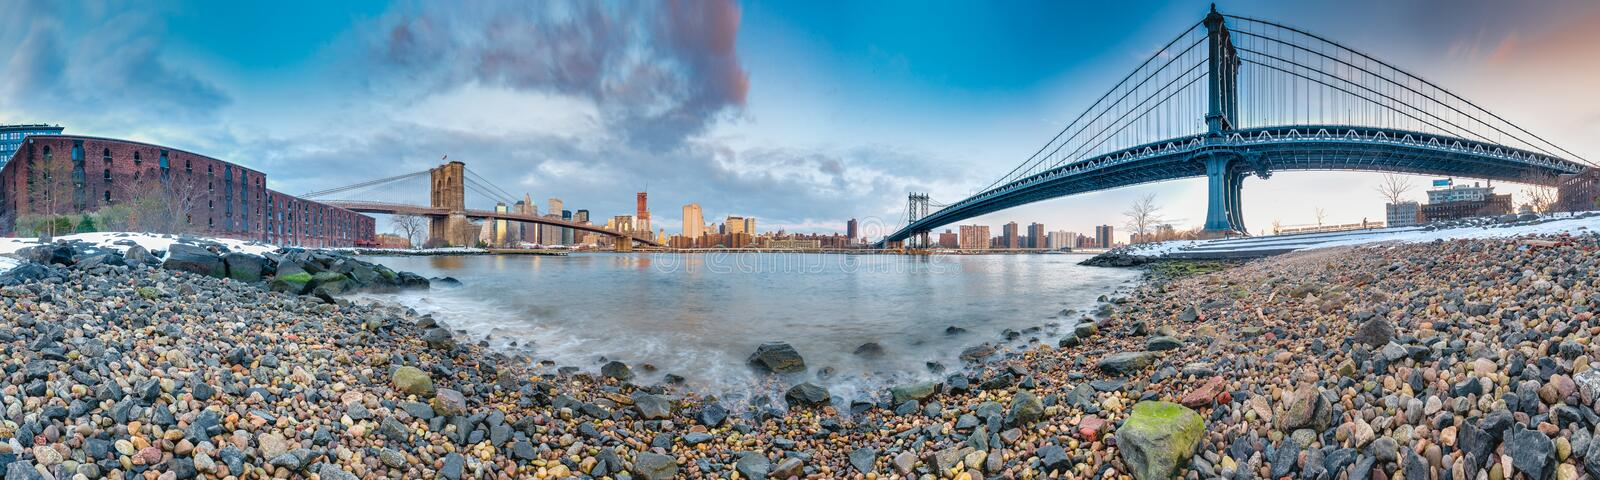 Manhattan horisont från Pebble Beach i Brooklyn, Förenta staterna royaltyfri bild